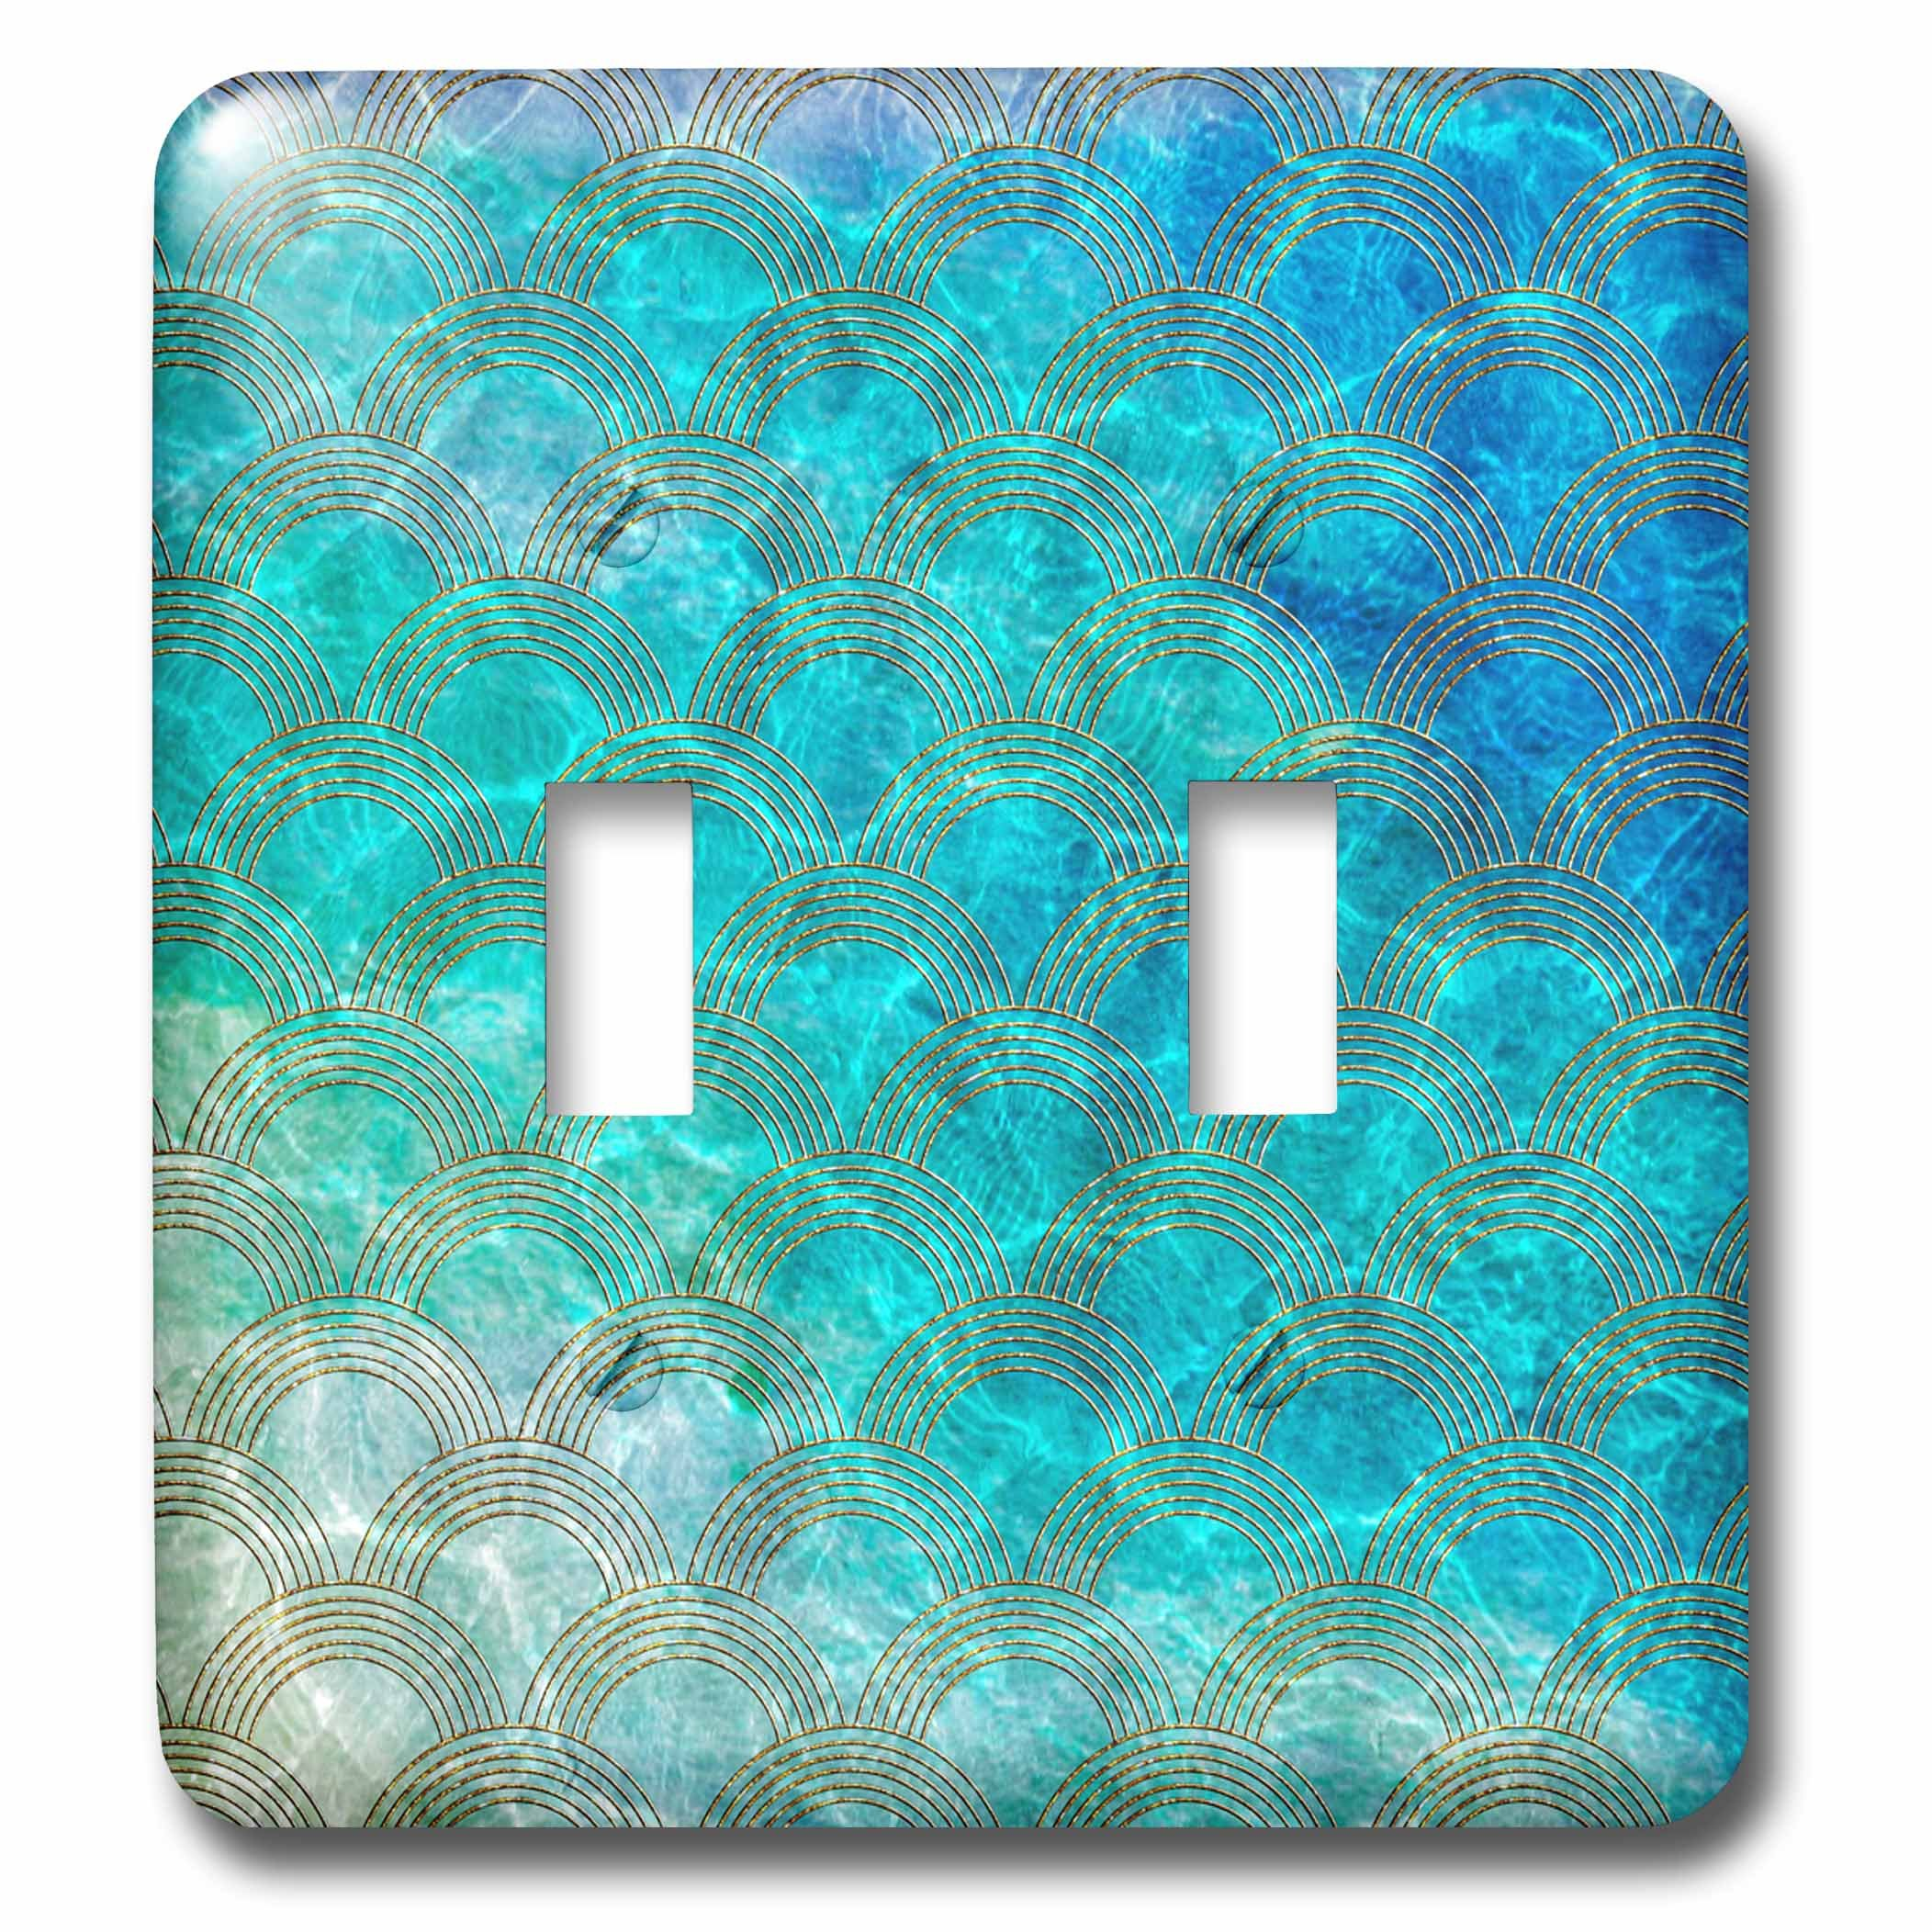 3dRose (lsp_266973_2) Double Toggle Switch (2) Shiny Teal Ocean Mermaid Scales Glitter Effect Art Print